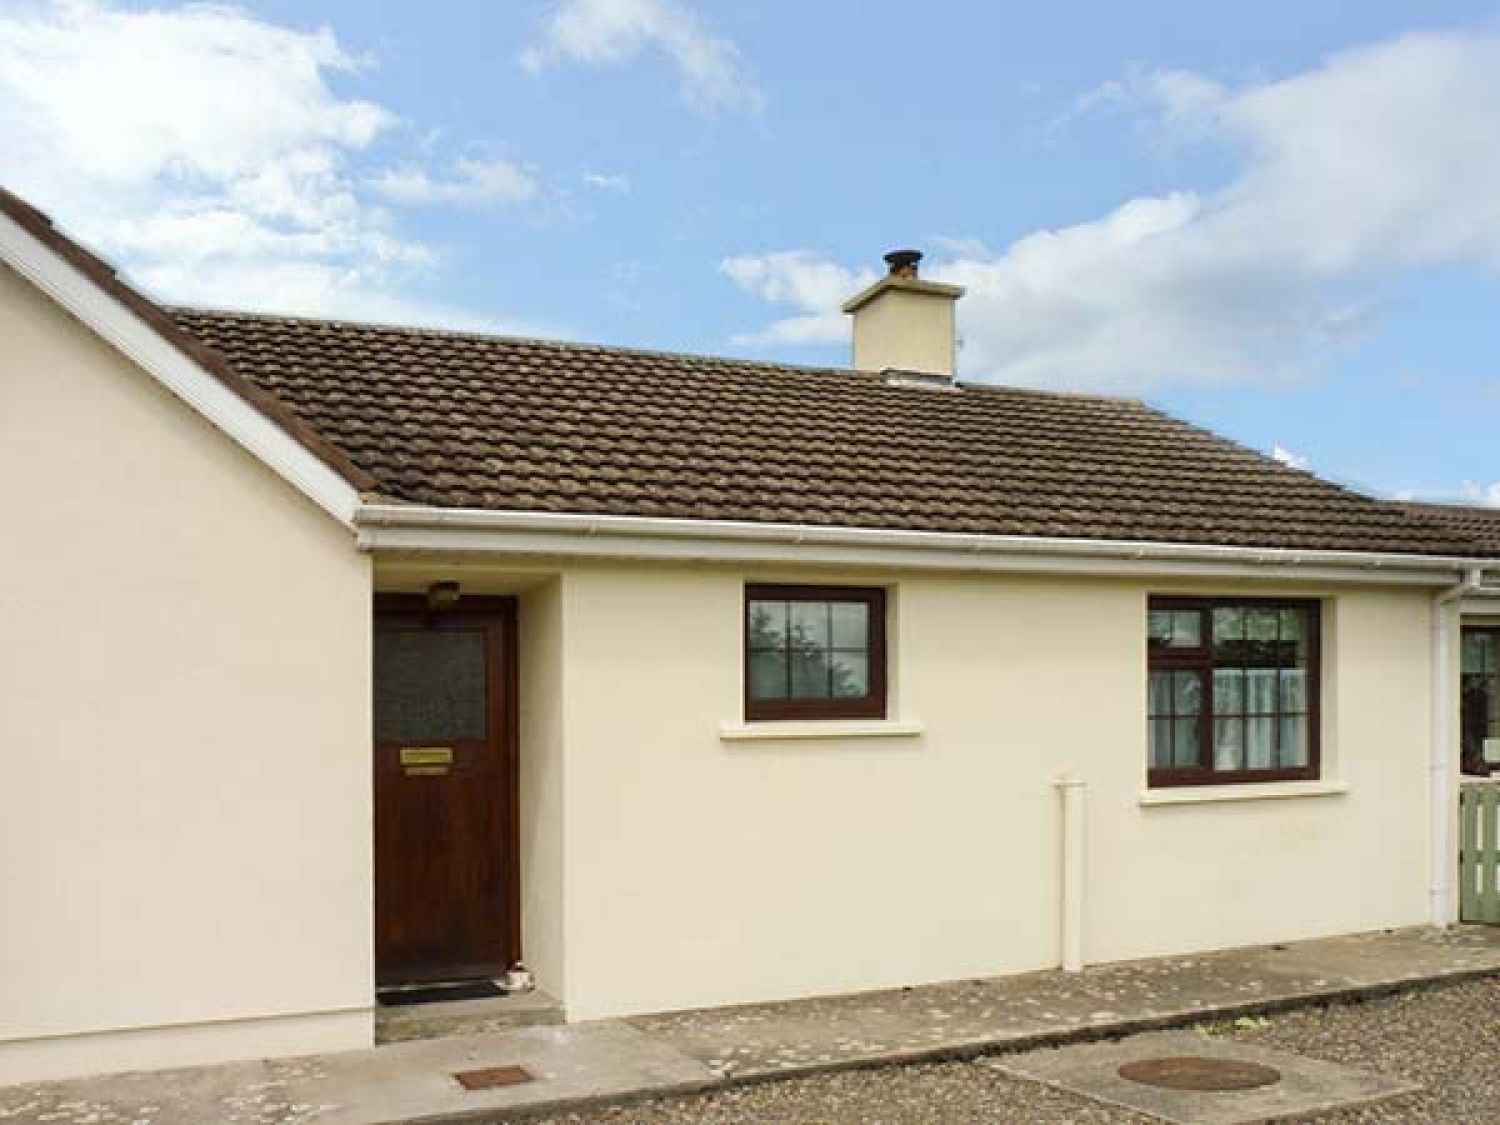 Home from Home at Middlequarter - South Ireland - 938315 - photo 1